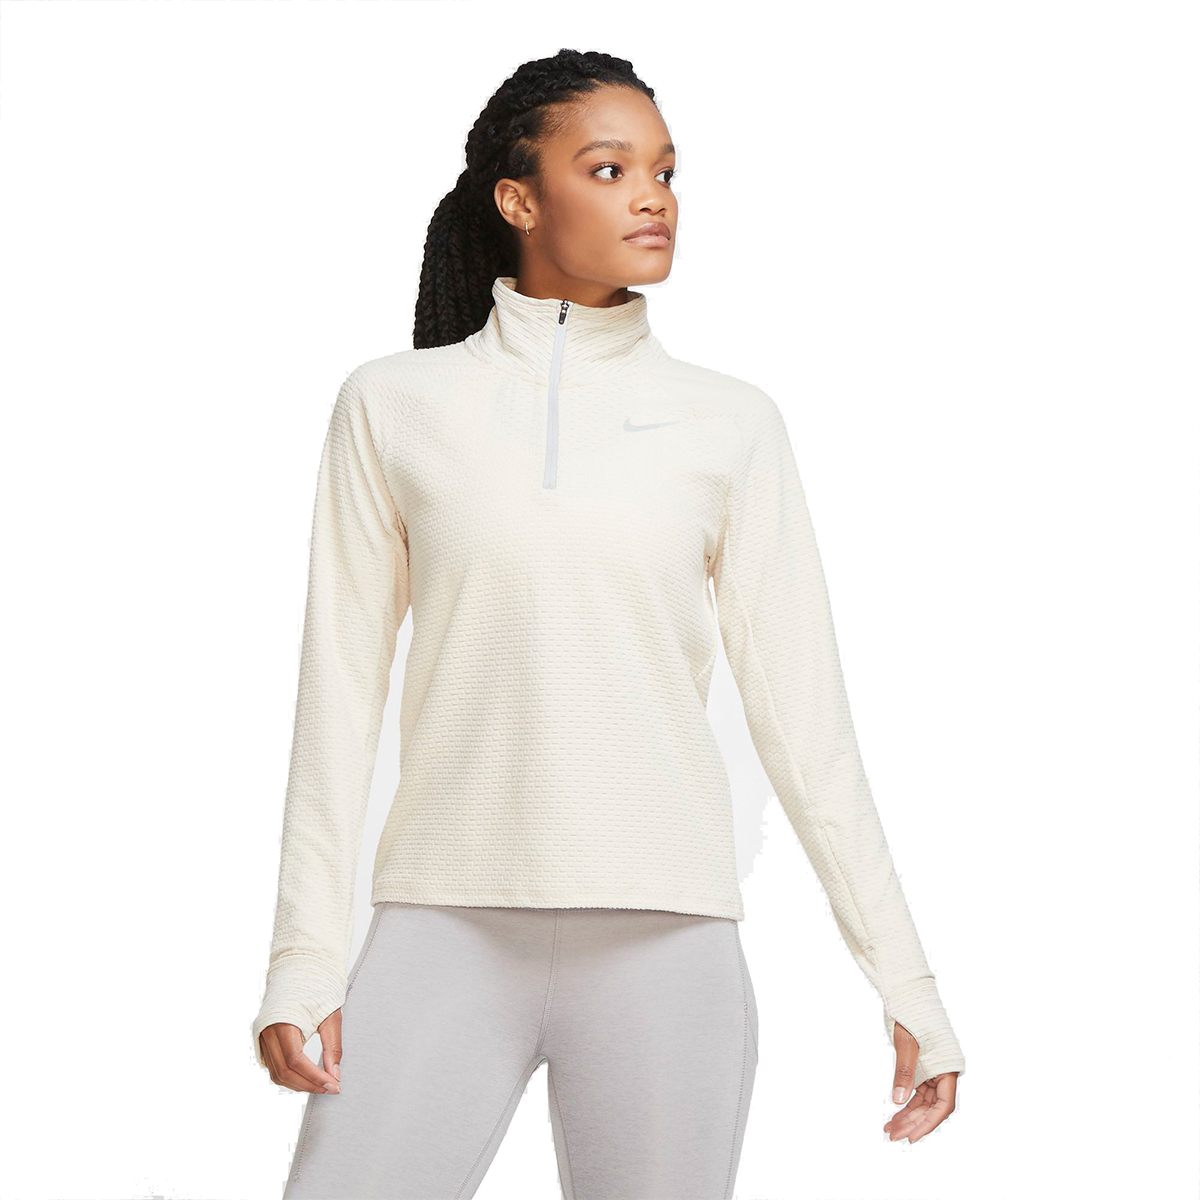 Women's Nike Sphere Half Zip Long Sleeve Shirt - Color: Oatmeal/Heather - Size: XS, Oatmeal/Heather, large, image 1